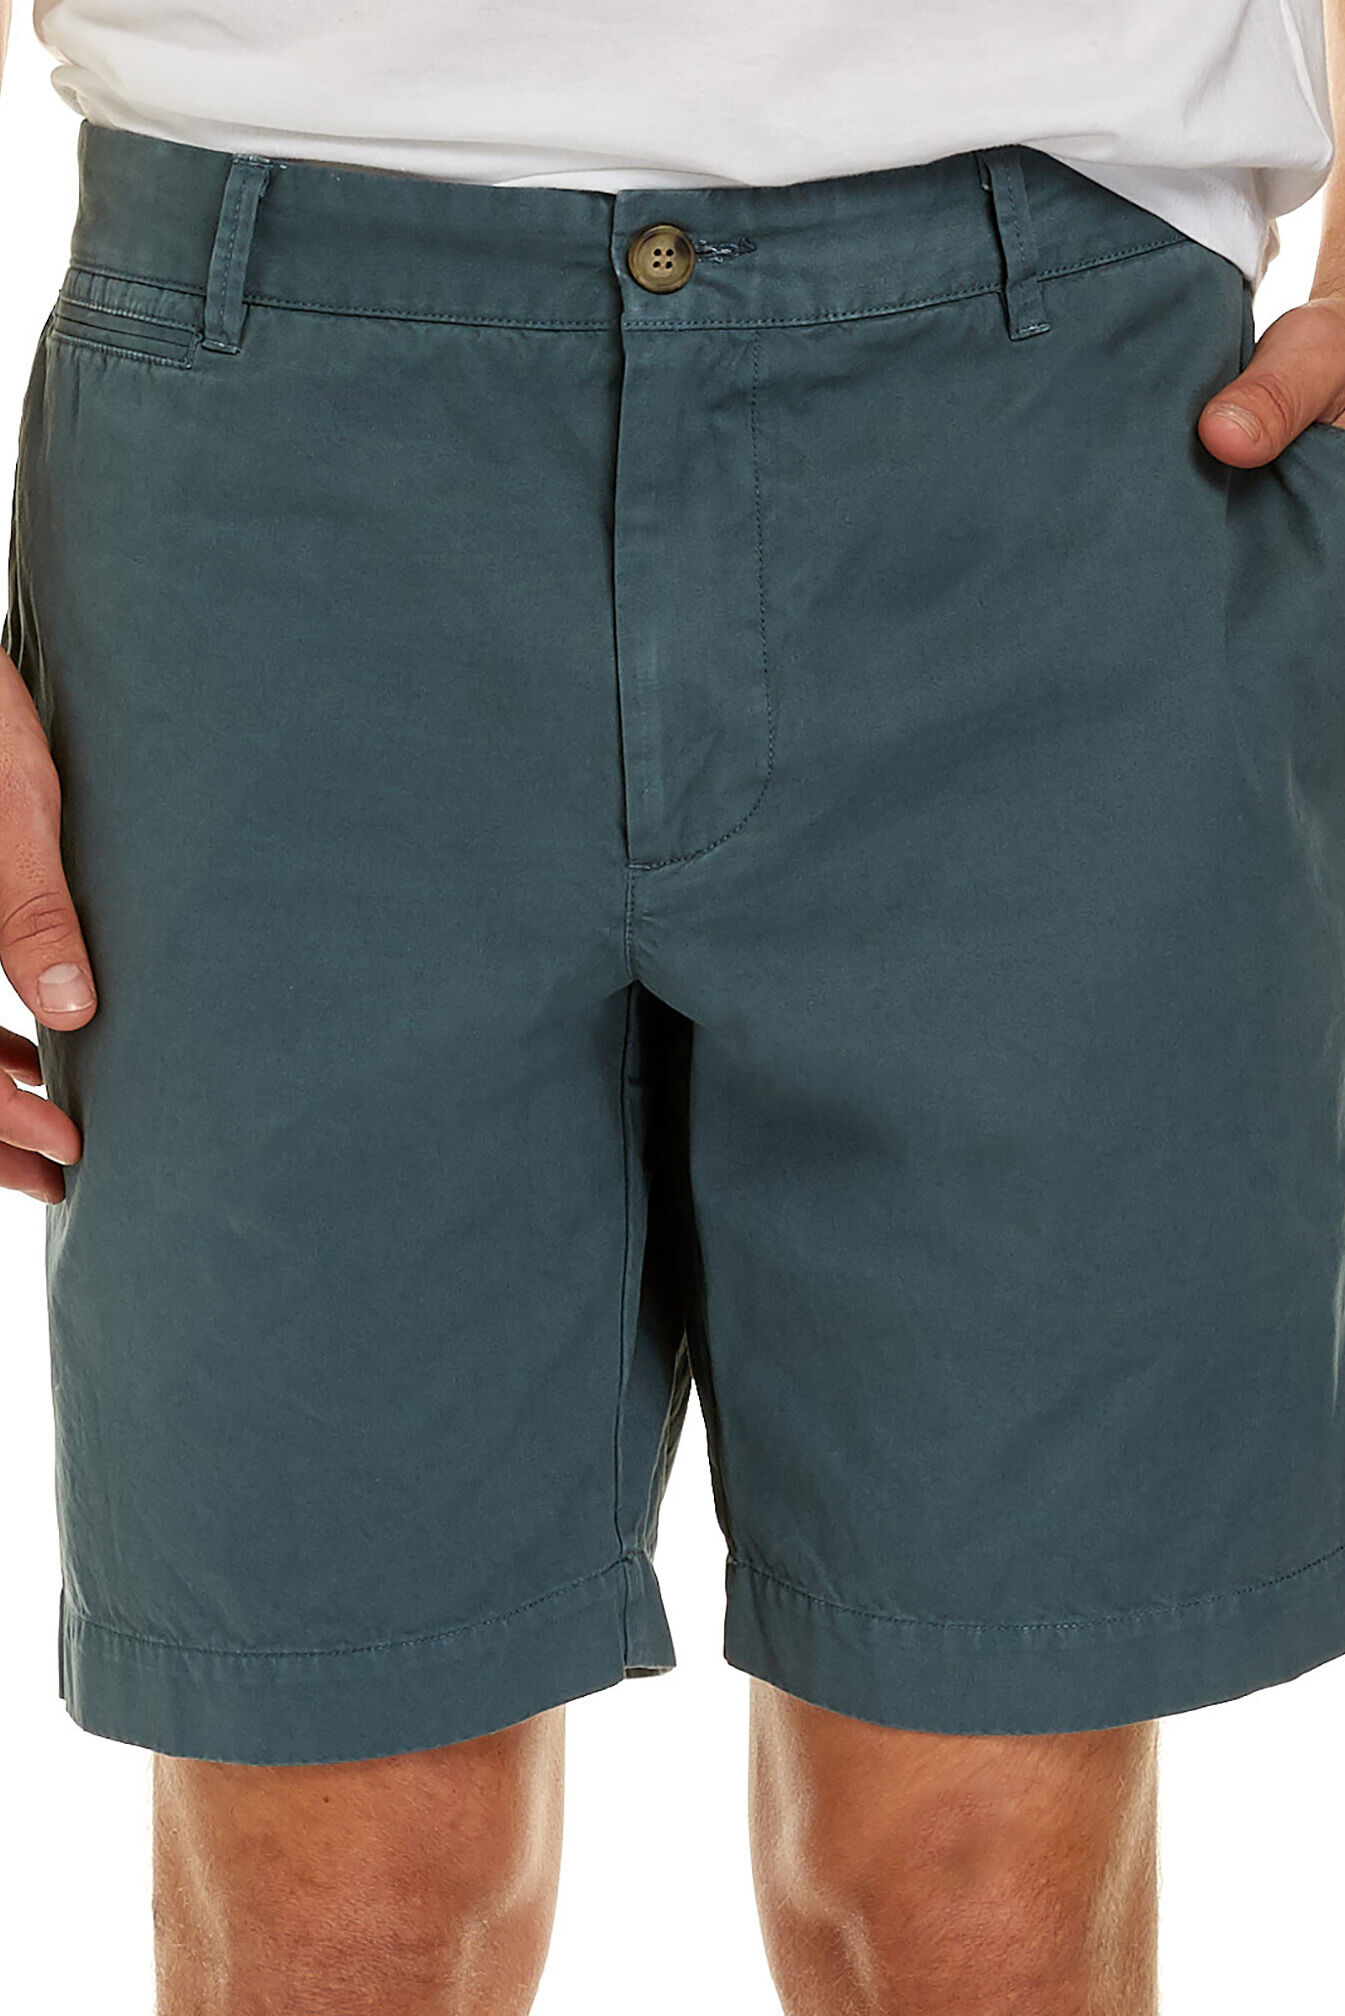 Shop Mountain Khakis classic fit men's shorts that are straight through the hip and thigh good for hiking, camping, or happy hour.